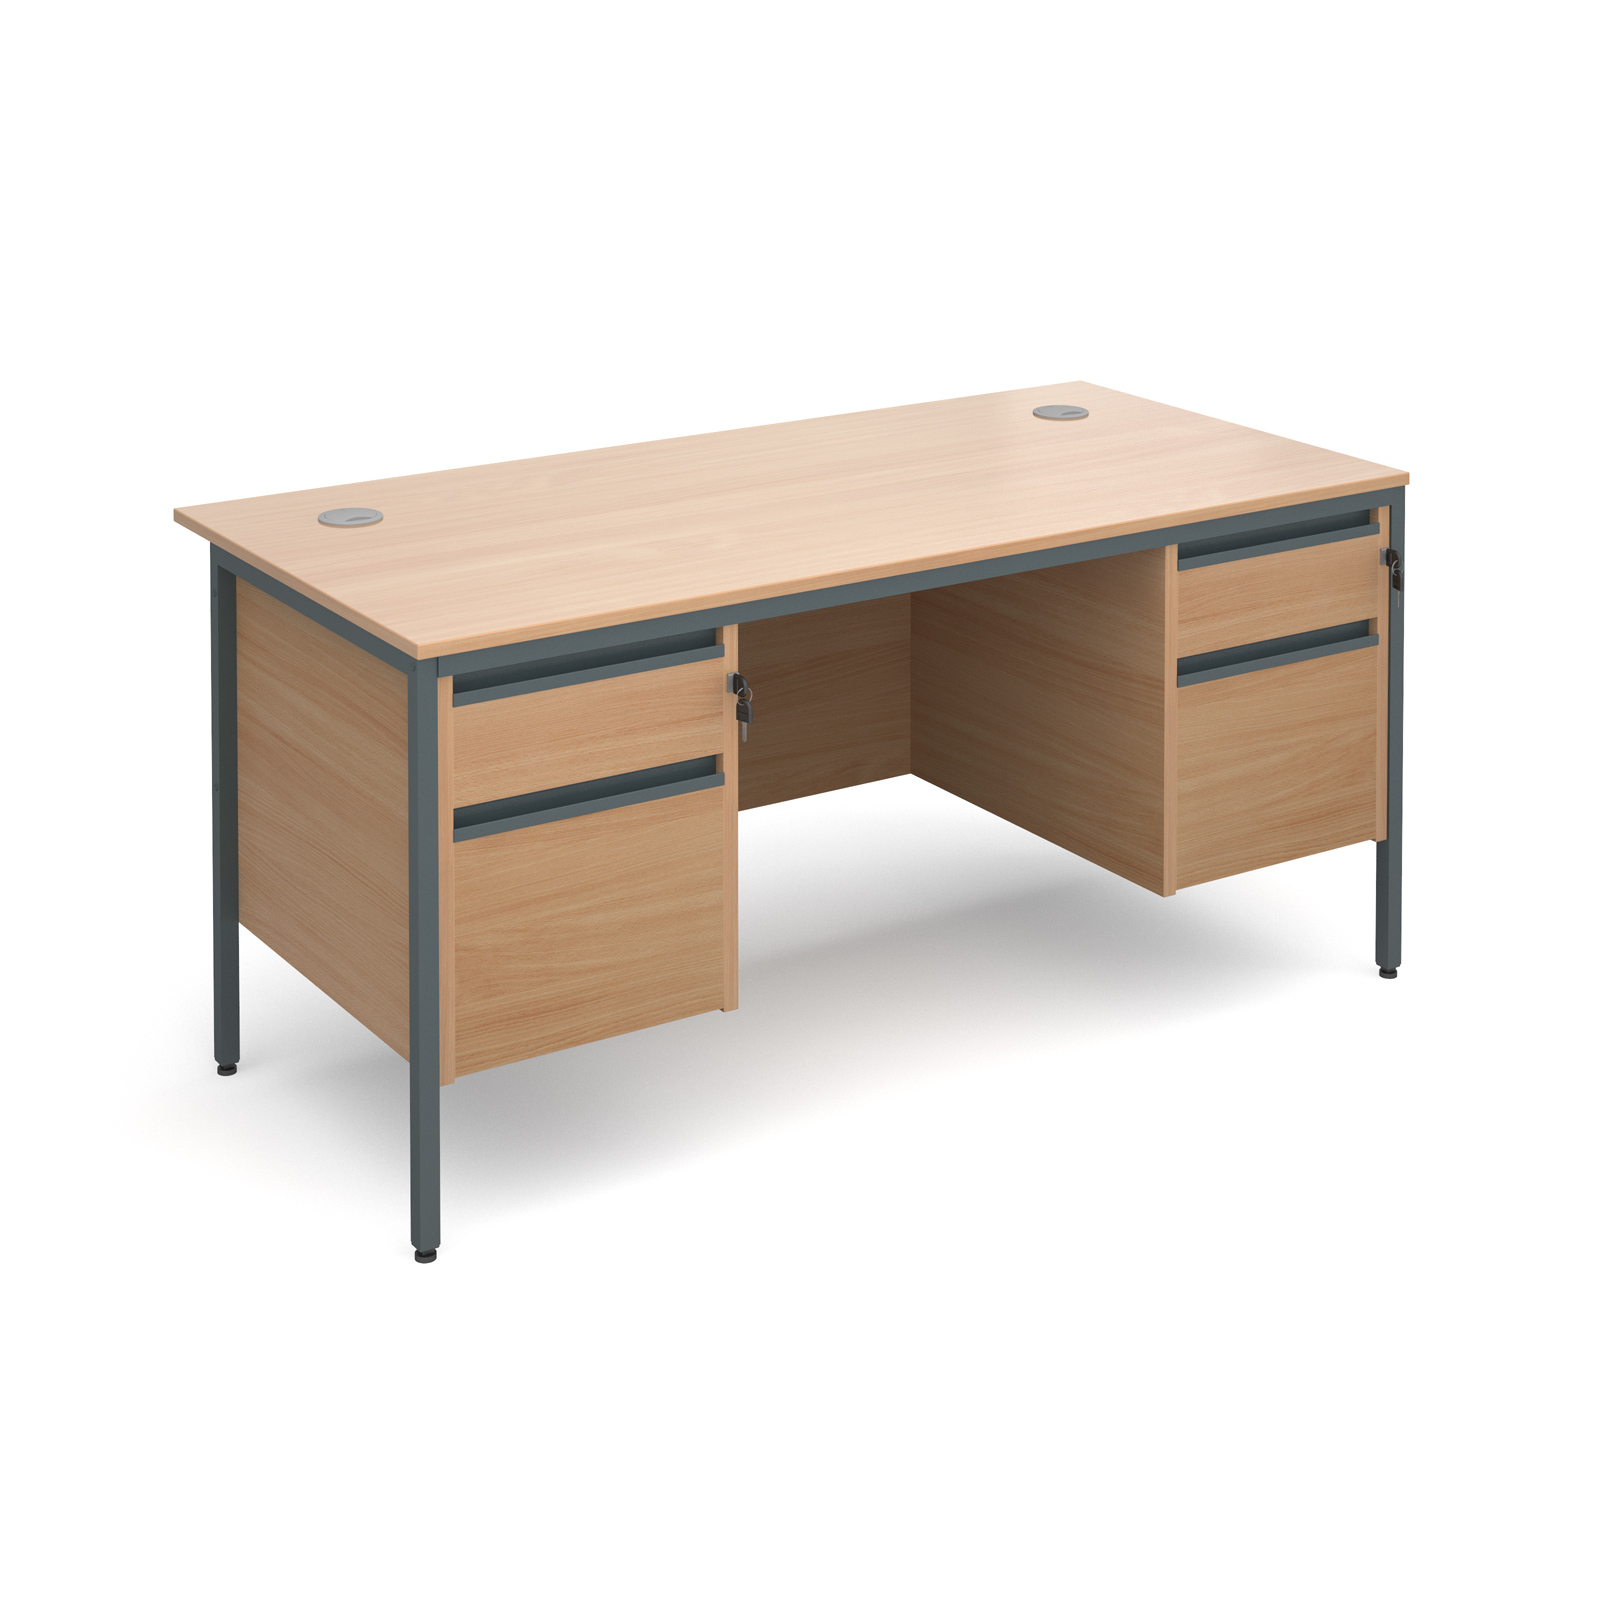 Maestro H frame straight desk with 2 and 2 drawer pedestals 1532mm - beech